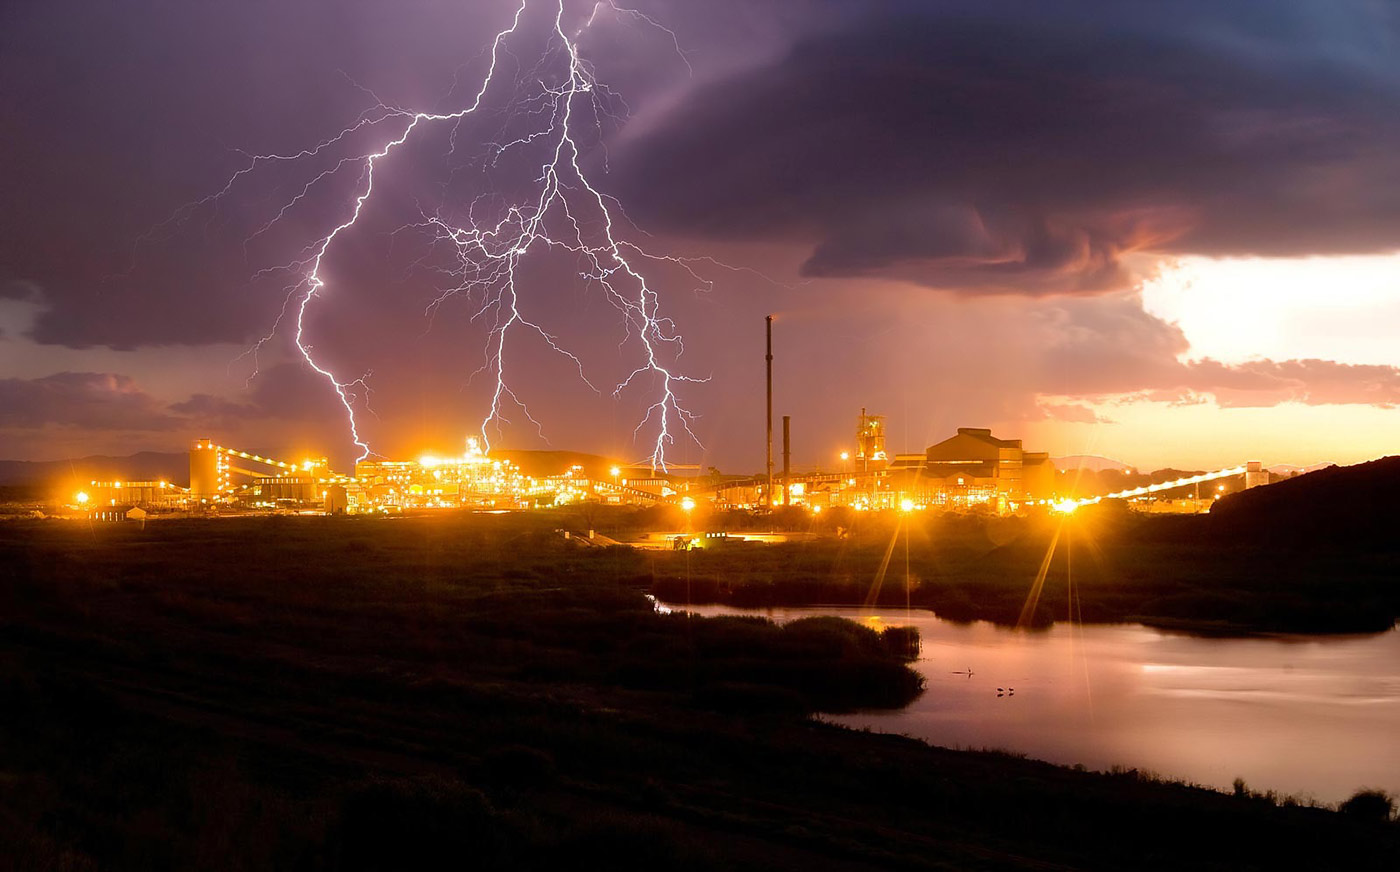 Lightning striking over smelter complex, industrial photography by Planet KB